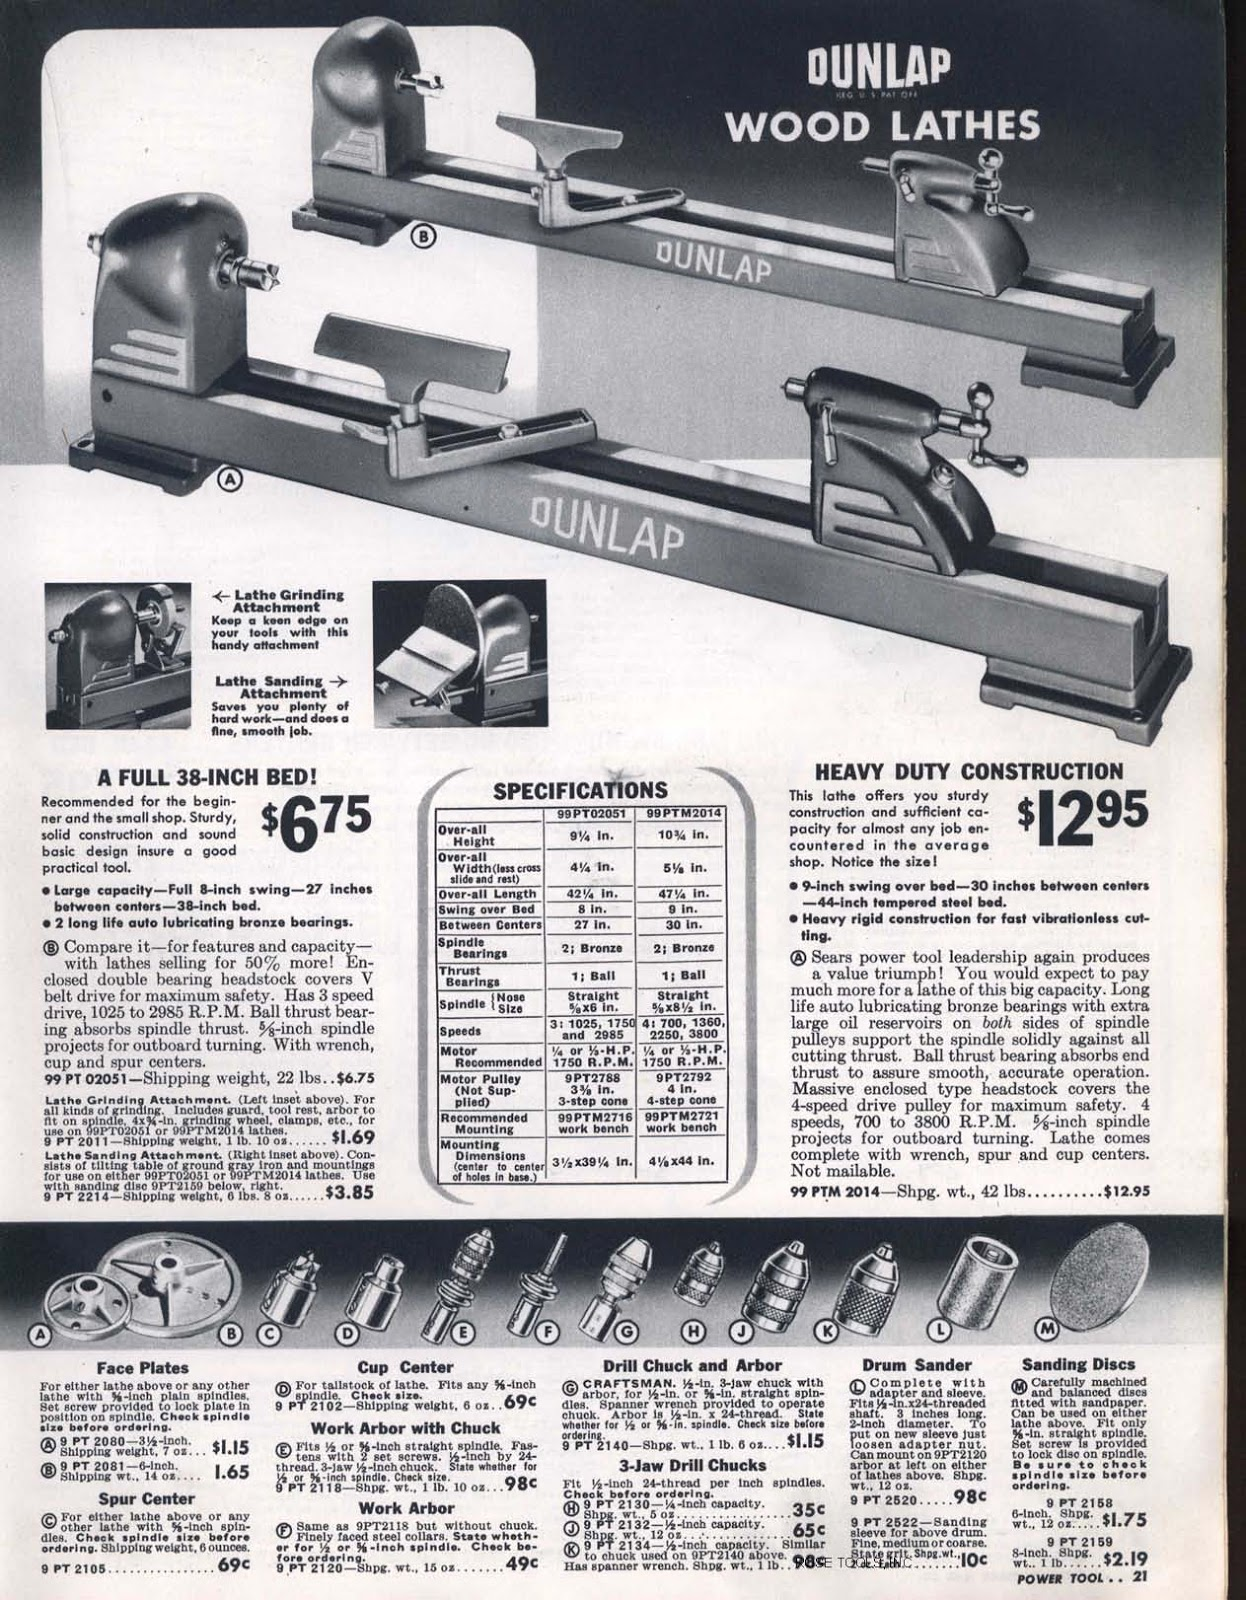 ... better image of the page from the 1942 catalog that Brad posted. It  clearly shows that the additional tail center options are attached with set  screws.